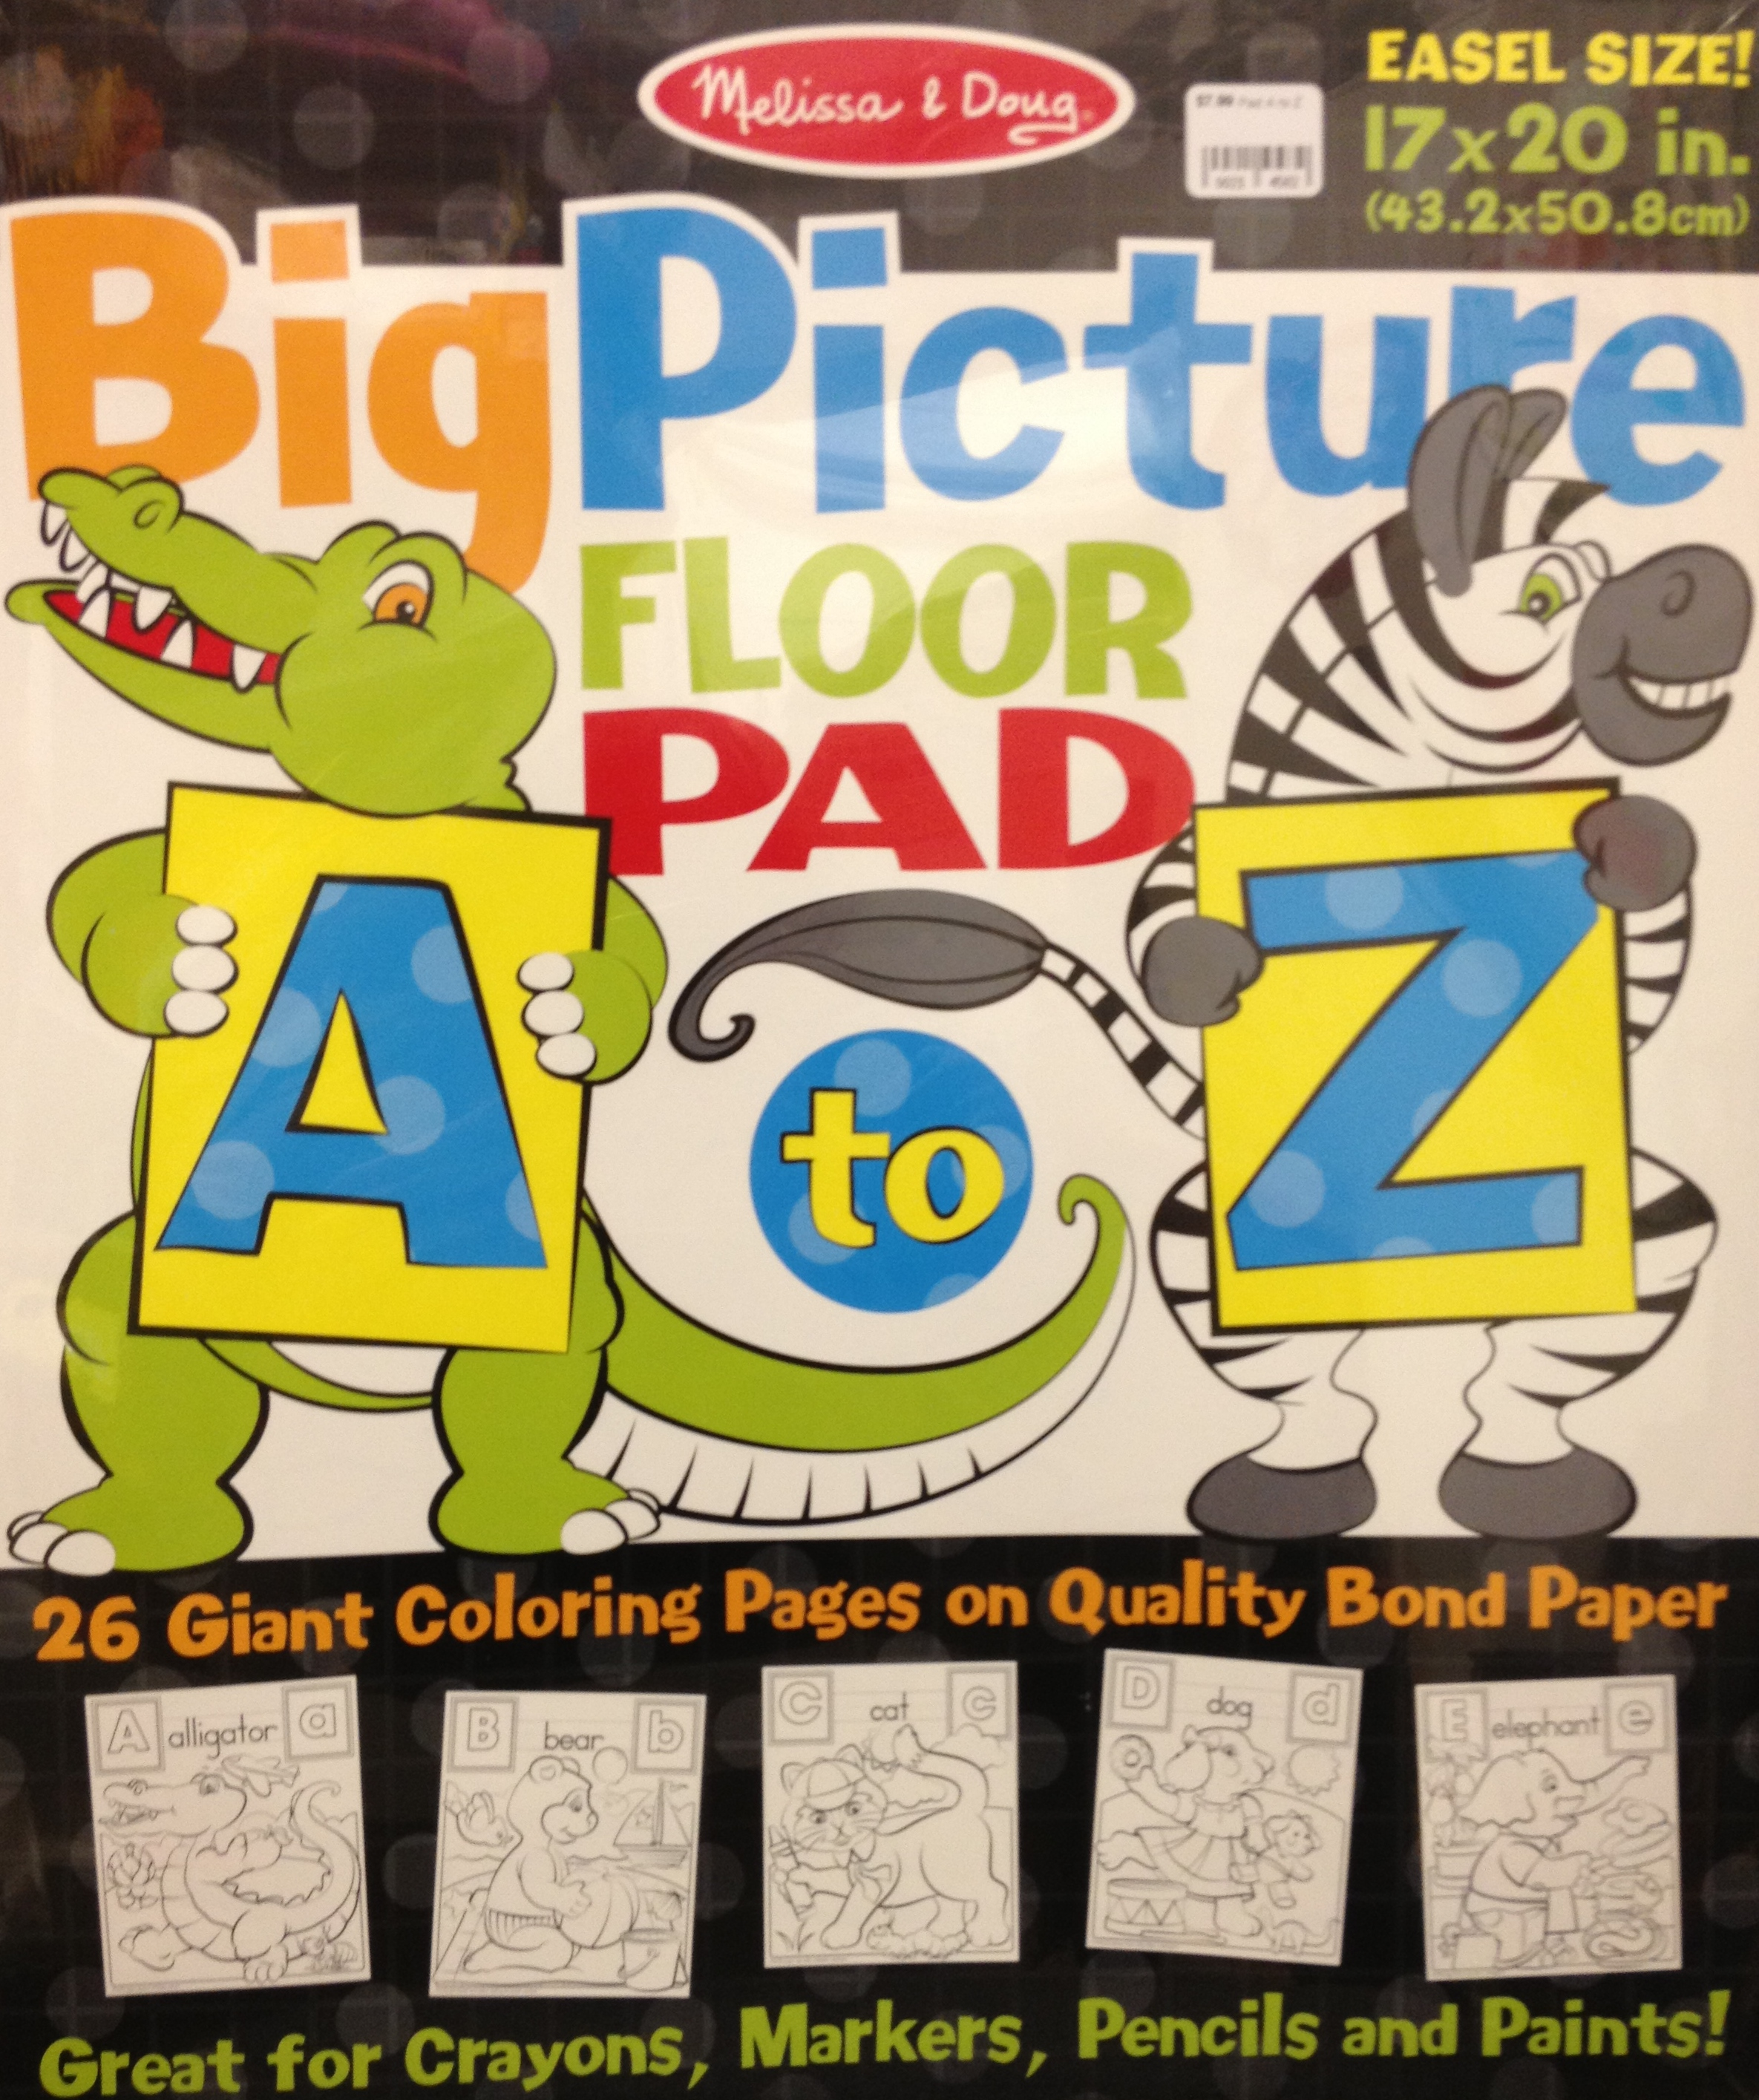 Portland_Toys_melissa_and_doug_big_picture_floor_pad